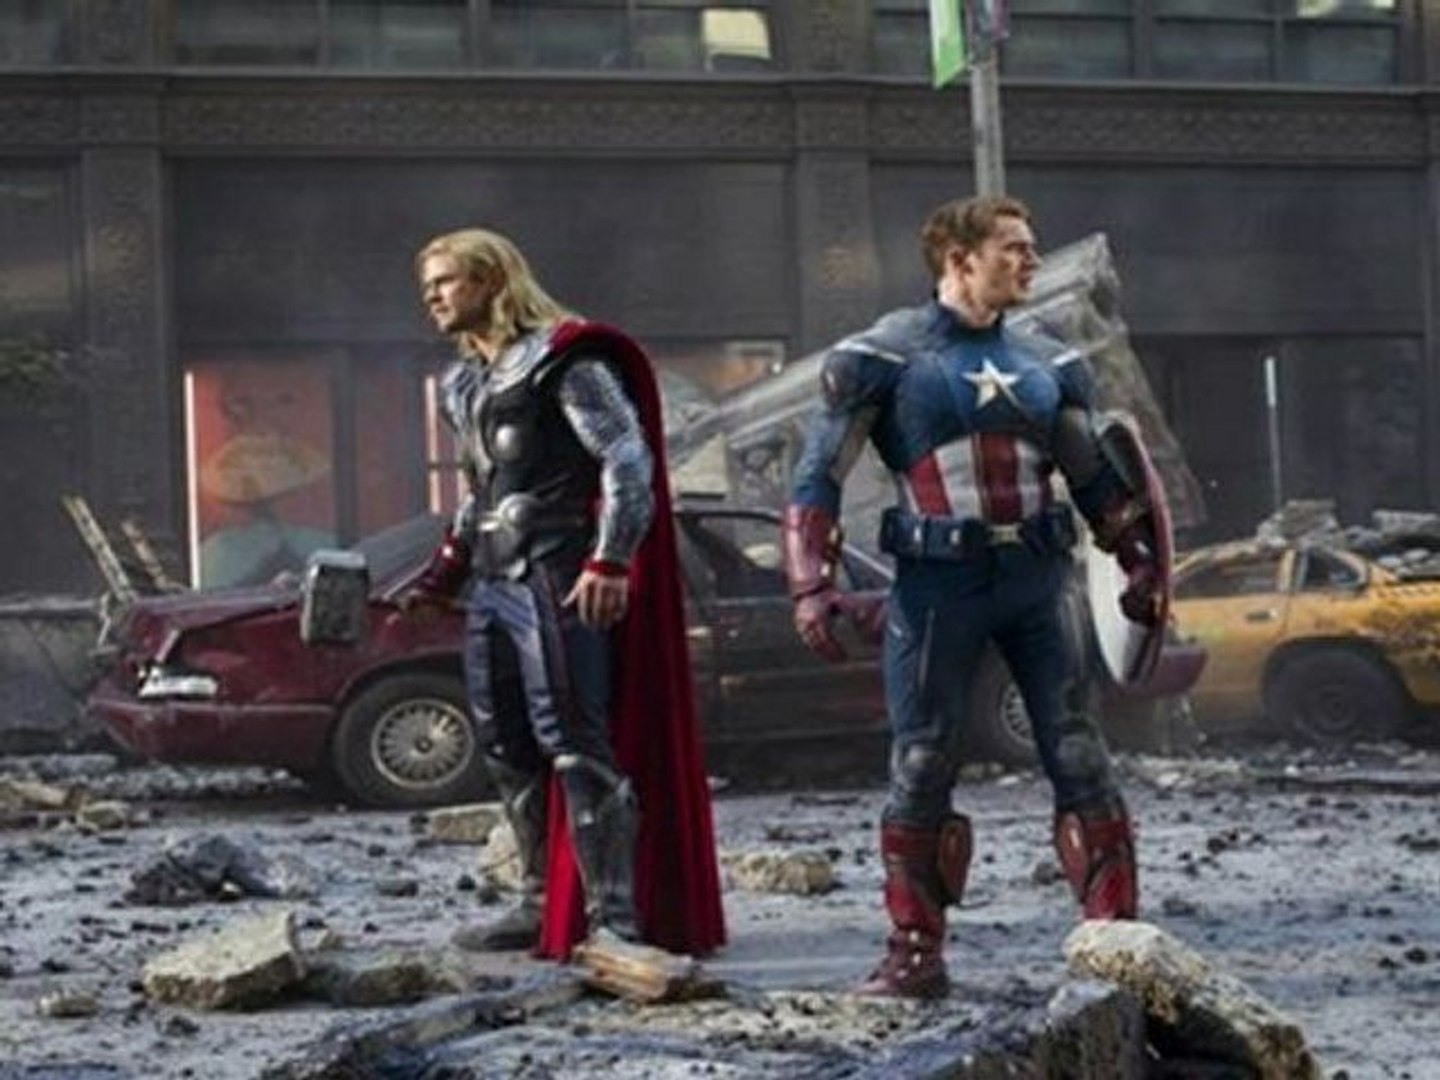 Download The Avengers 2012 Movie Free HD Full Movie - The Avengers Assemble Full Movie